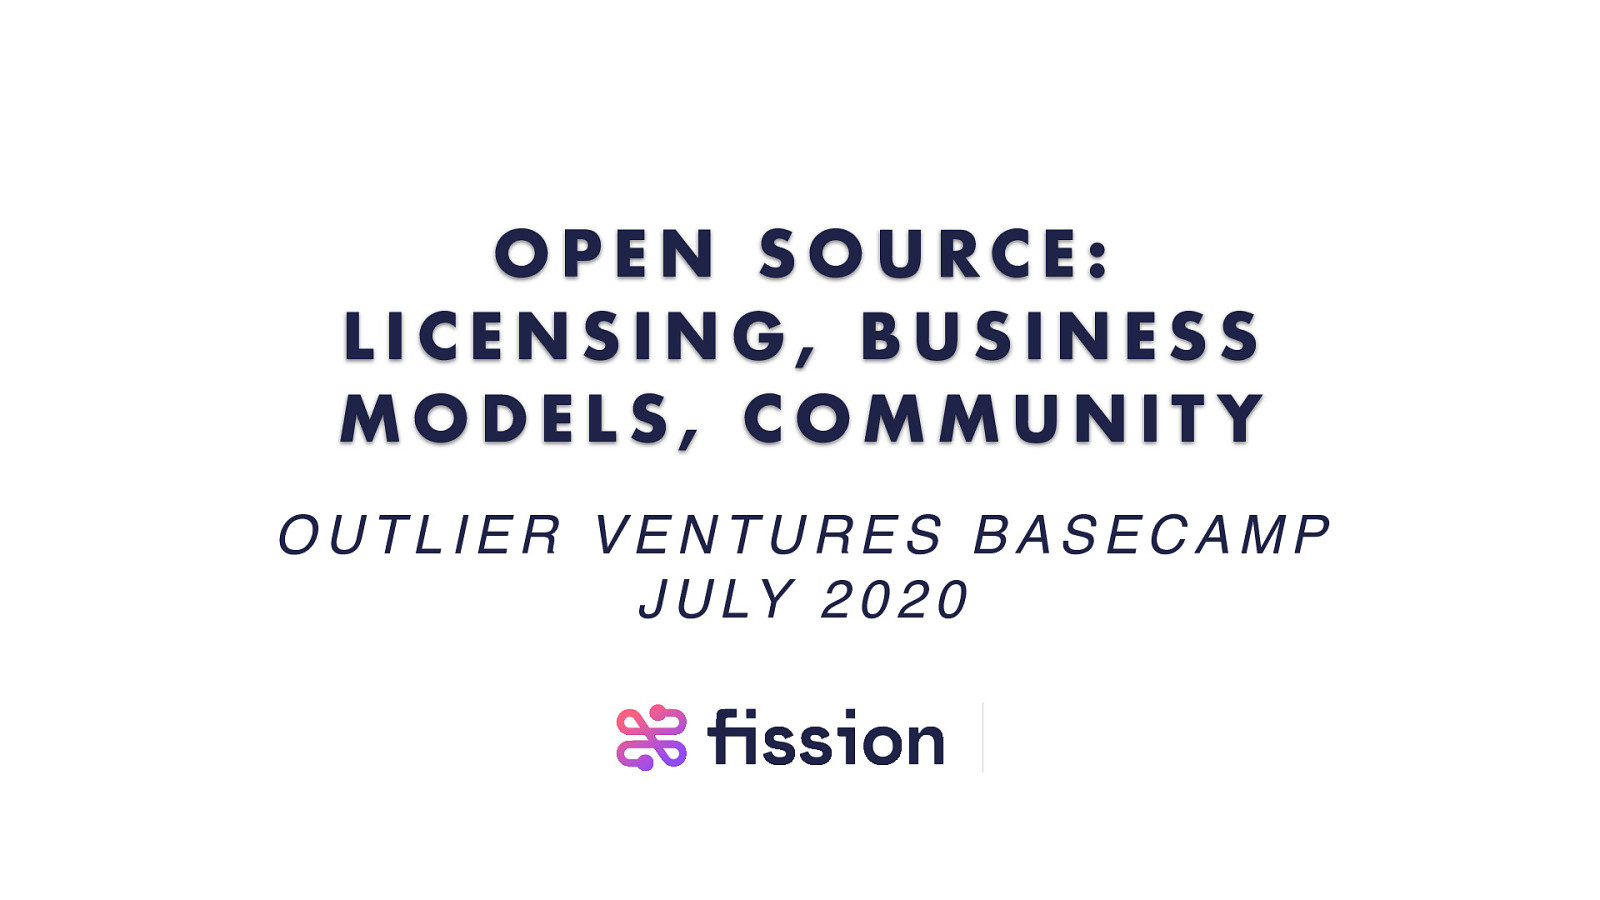 Open Source: Licensing, Business Models, Community